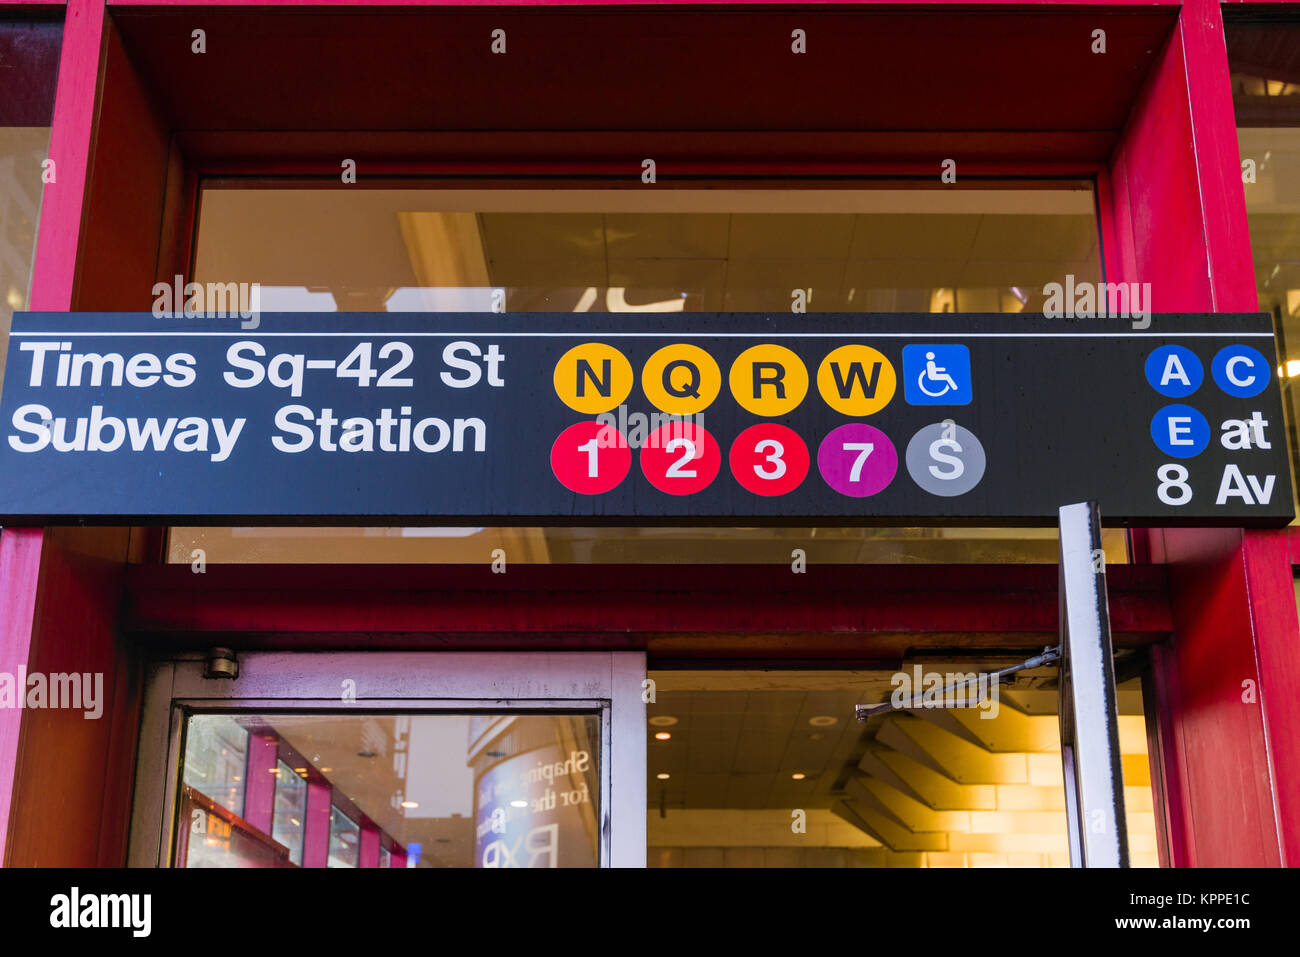 View of Times Square 42nd Street Subway entrance exterior signage, New York, USA - Stock Image